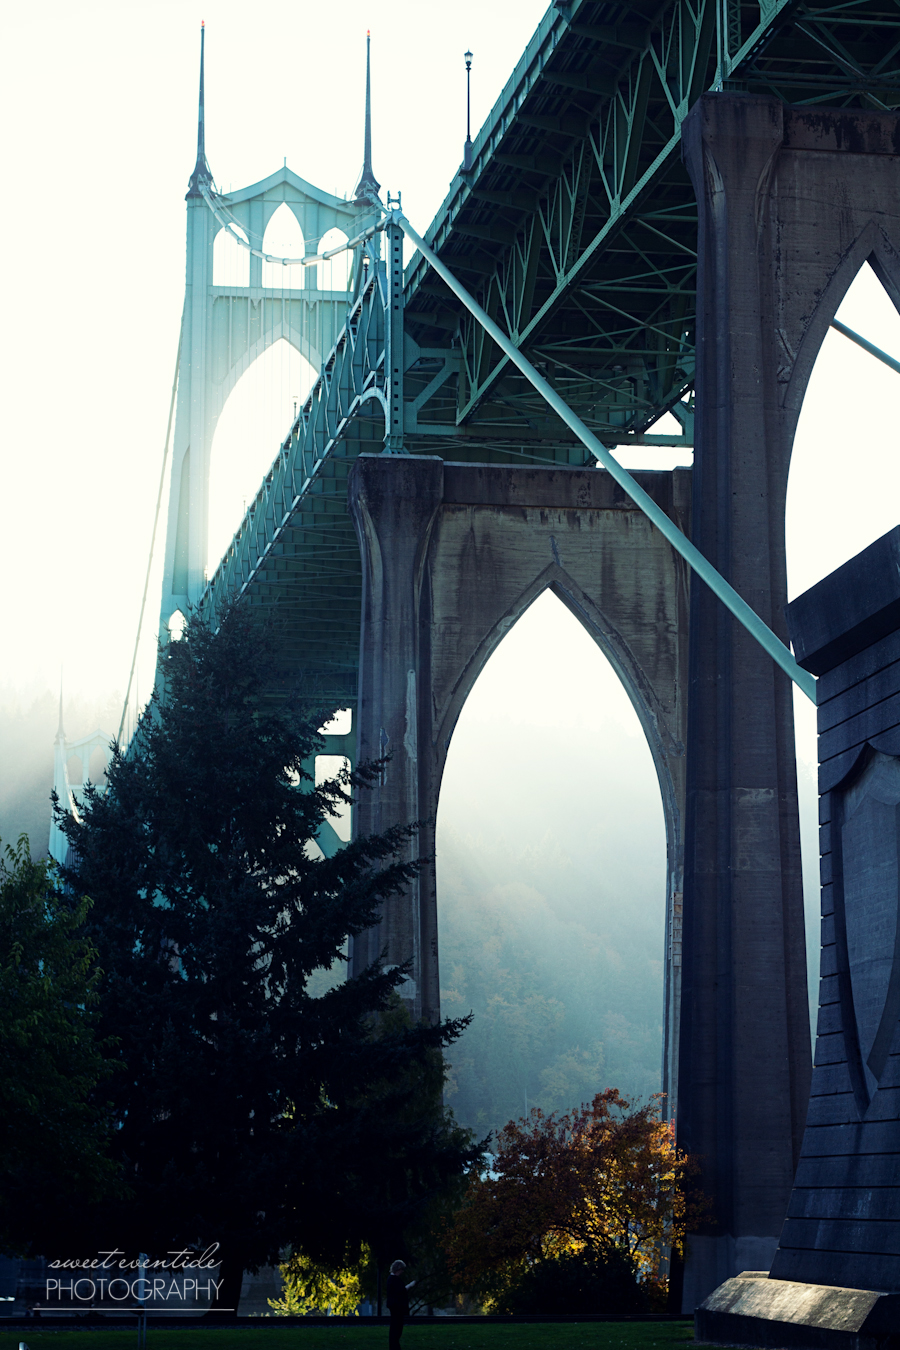 Photograph of the St. Johns Bridge in Portland, OR by Jessica Nichols